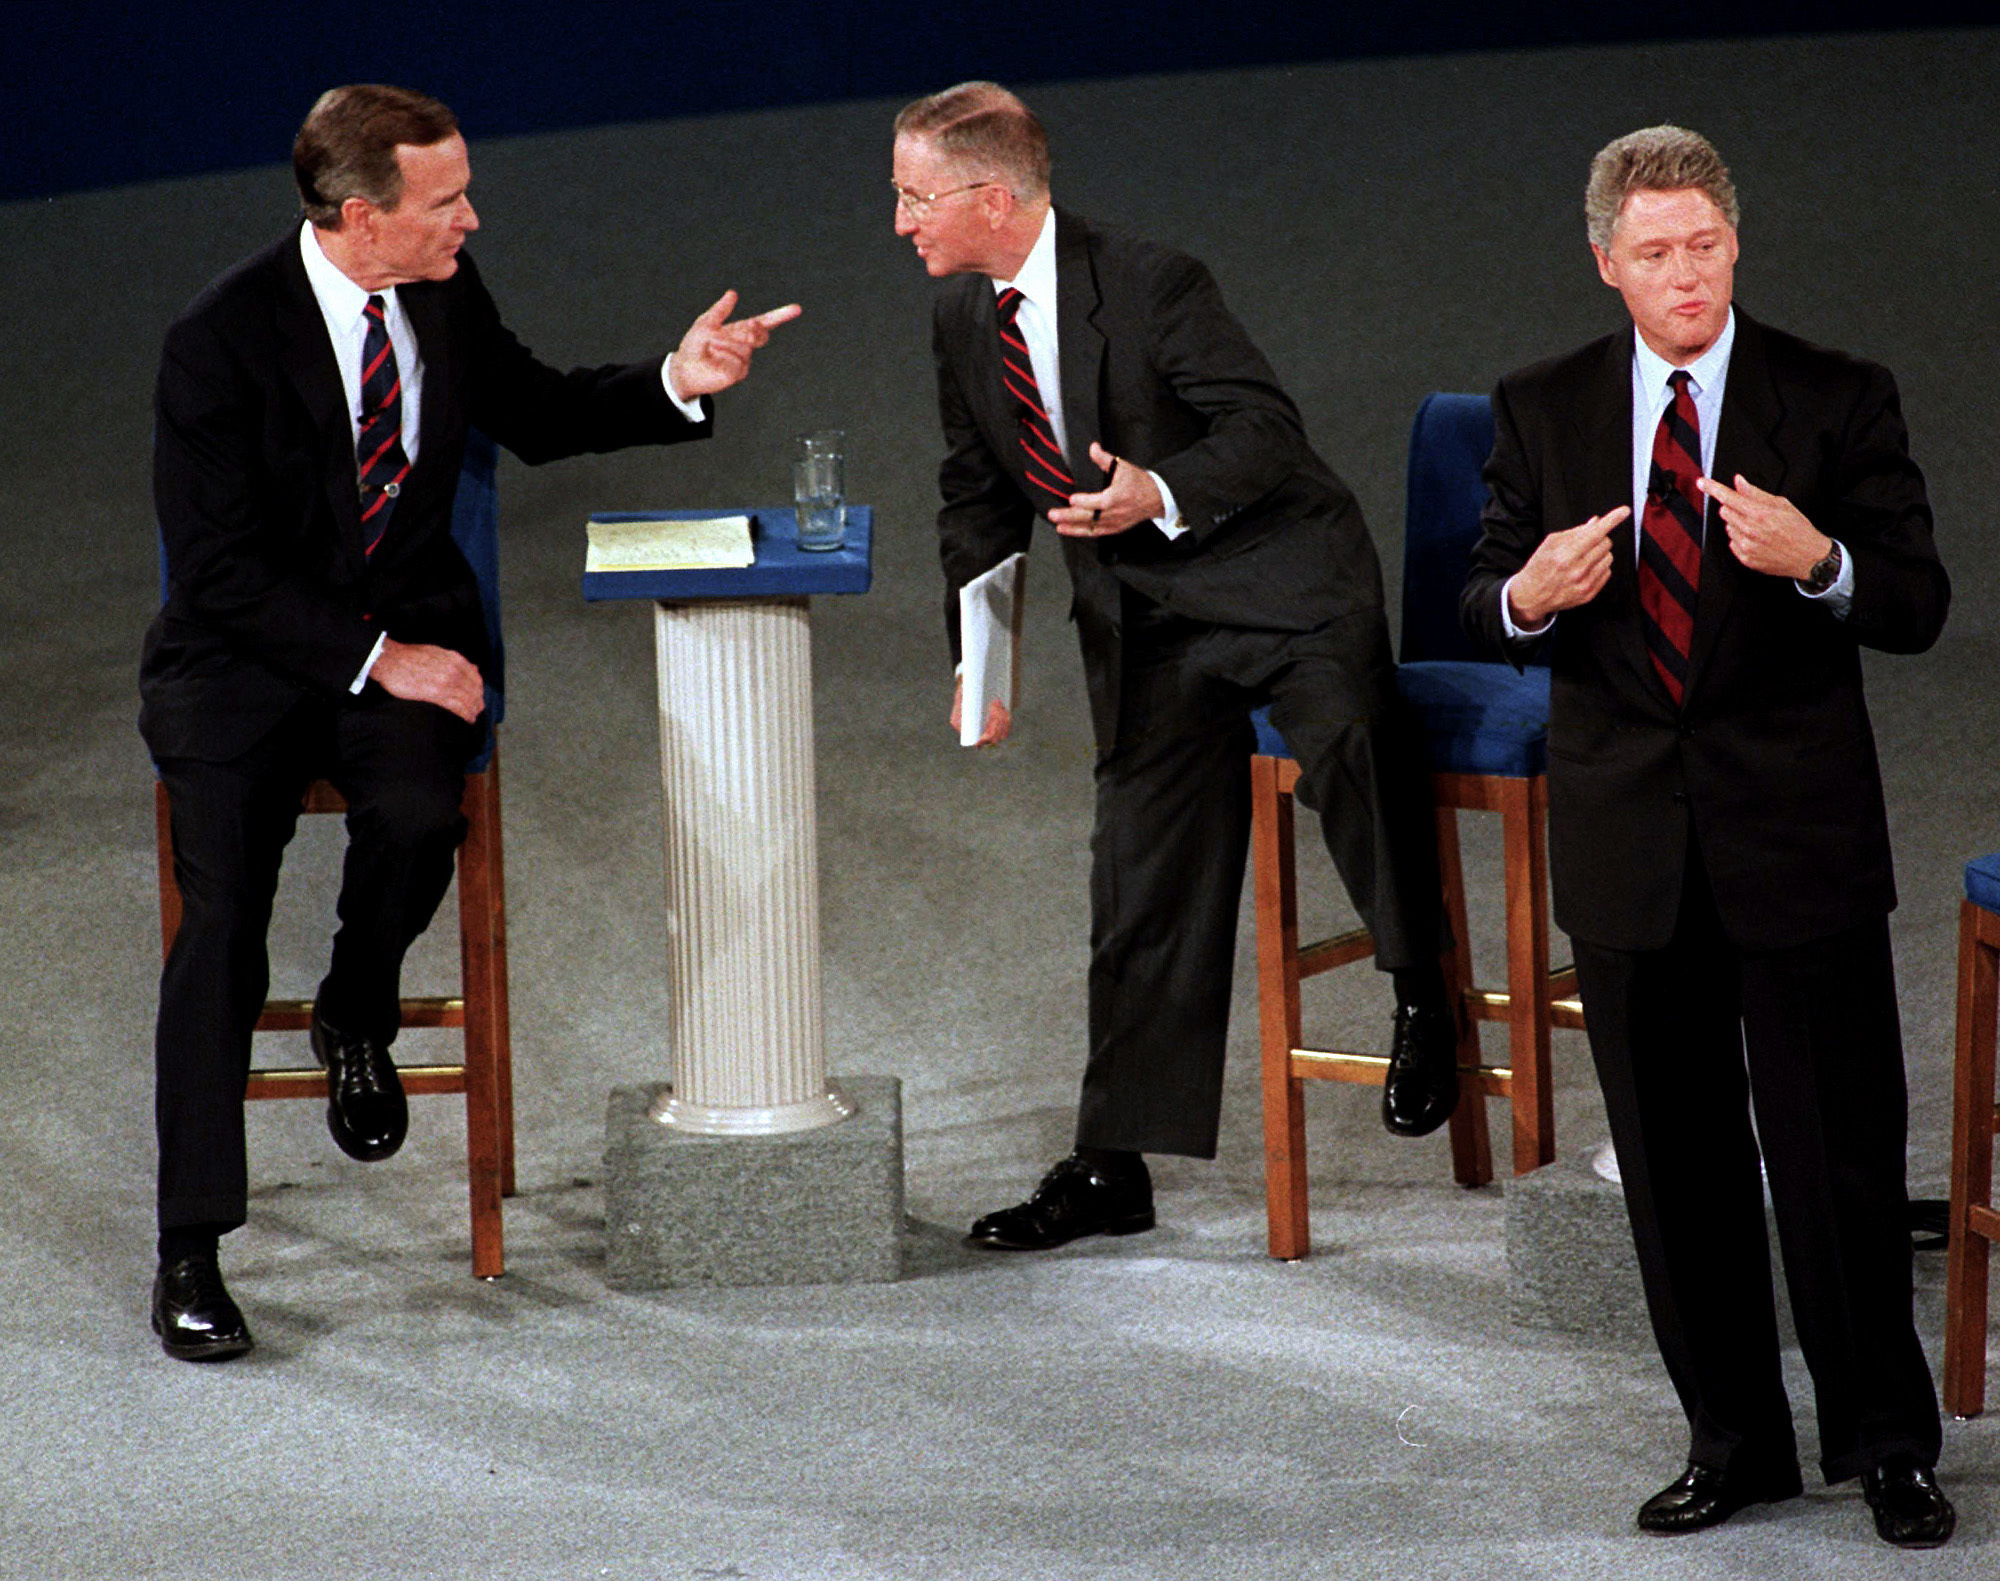 George H.W. Bush, el candidato independiente Ross Perot y el demócrata Bill Clinton durante un debate presidencial. (AP Photo/Marcy Nighswander, File)